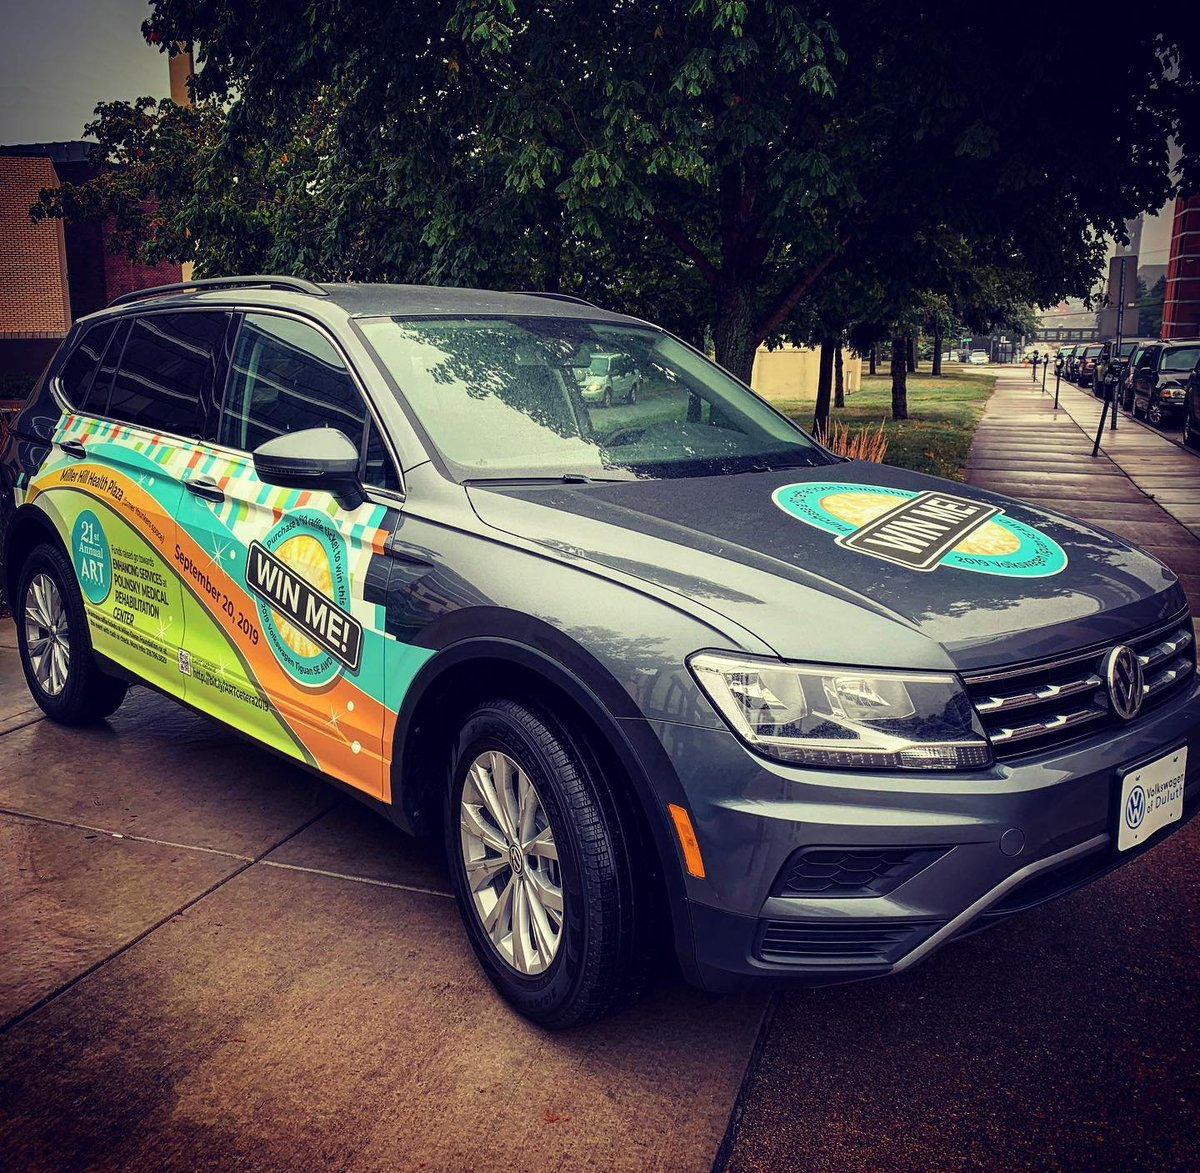 Vw Of Duluth >> Millerdwanfoundation On Twitter Rain Or Shine This 2019